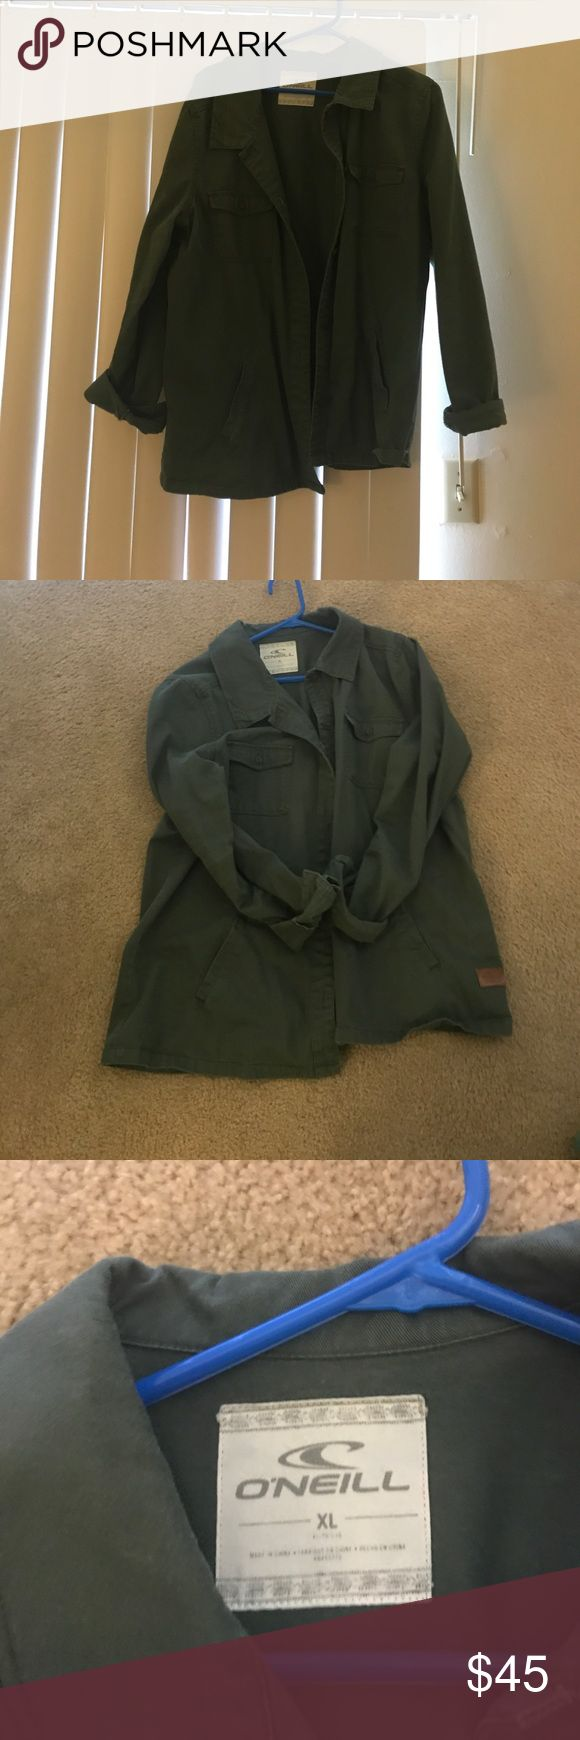 Green Utility jacket EUC O'Neill Utility jacket. I love this jacket but it's just too big. O'Neill Jackets & Coats Utility Jackets